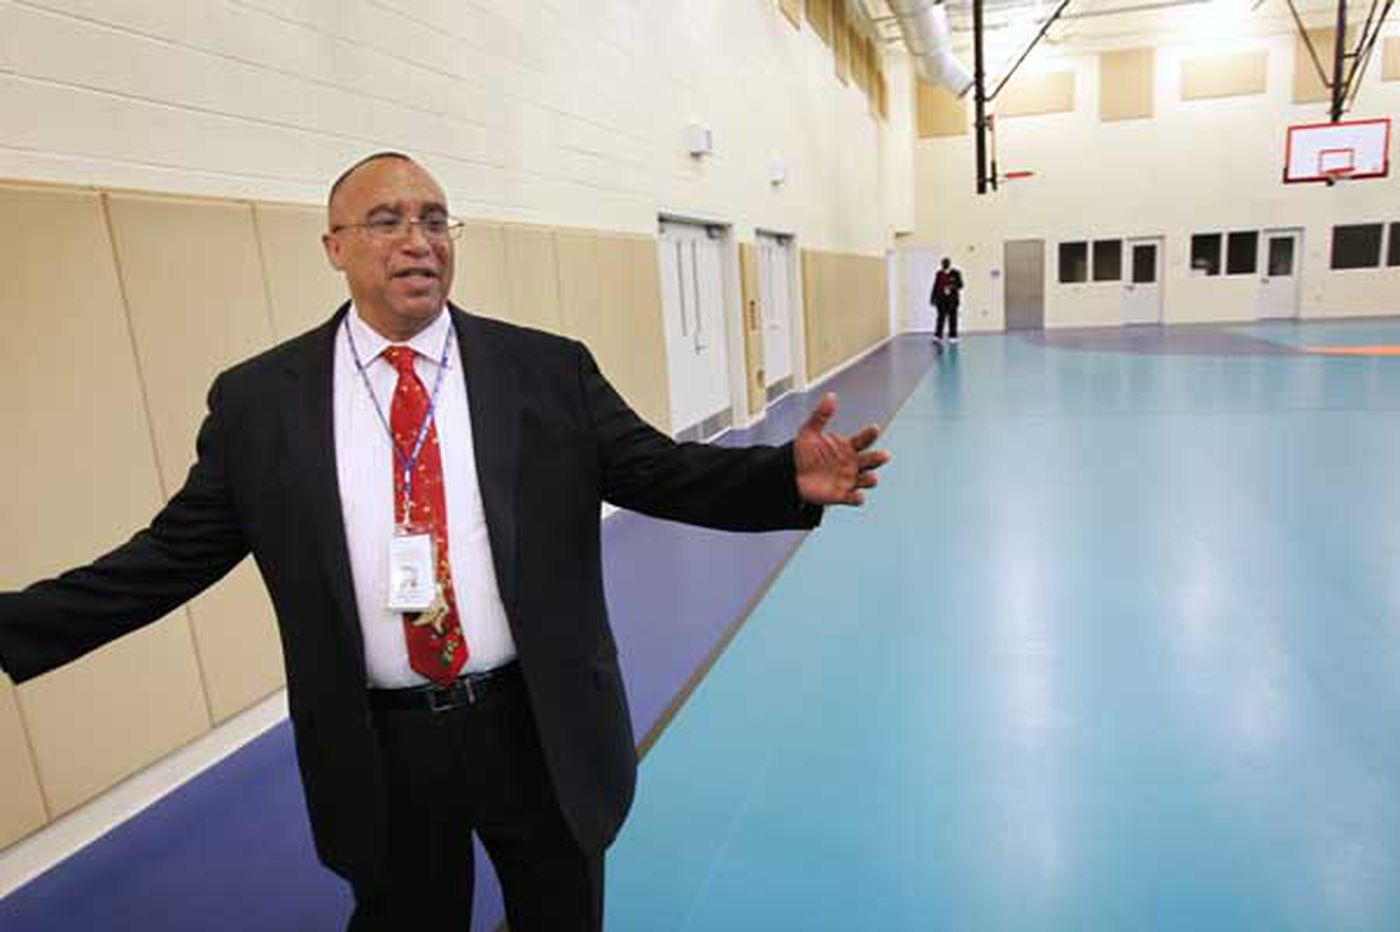 Phila.'s new youth detention center dedicated